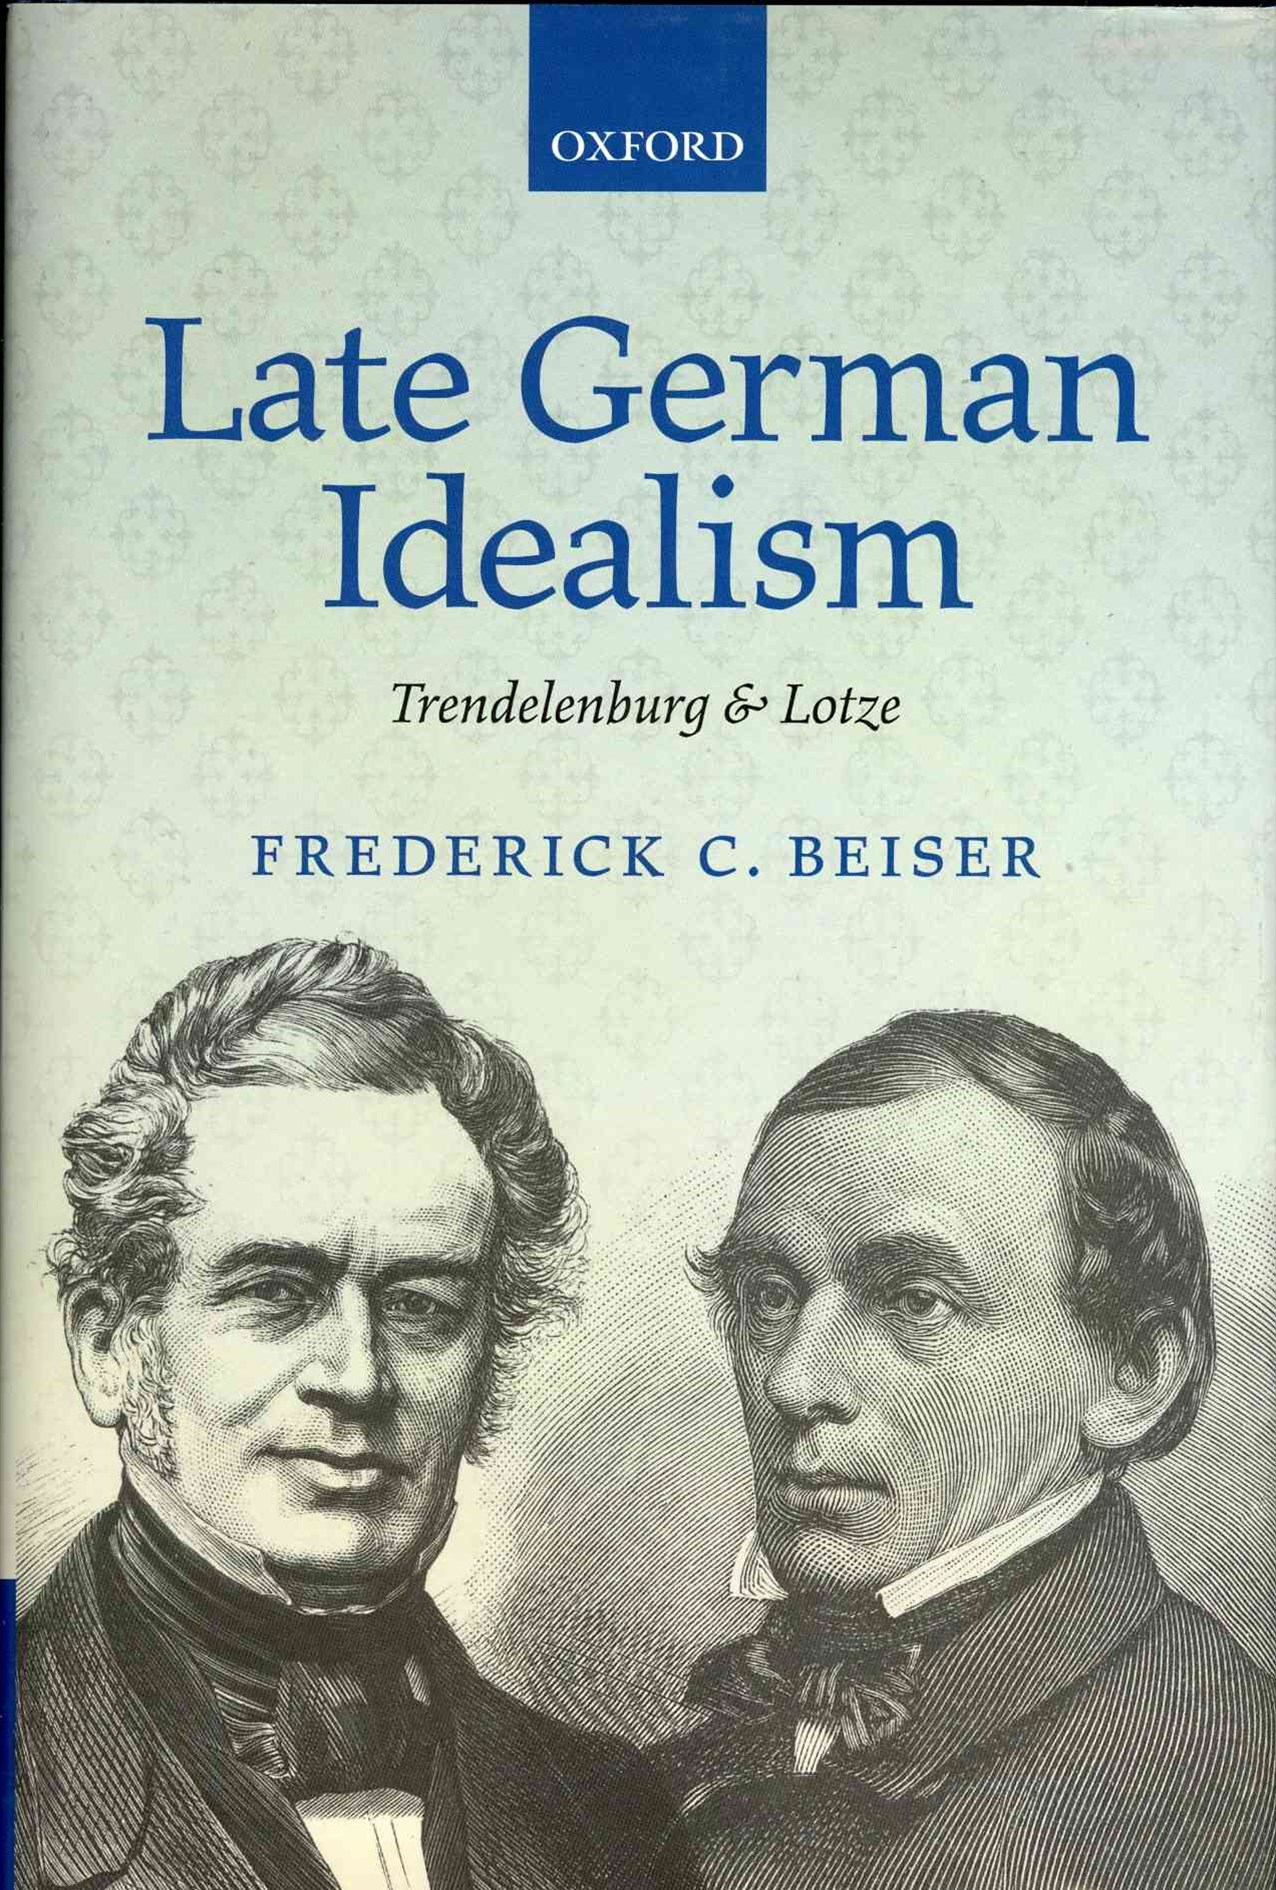 Late German Idealism